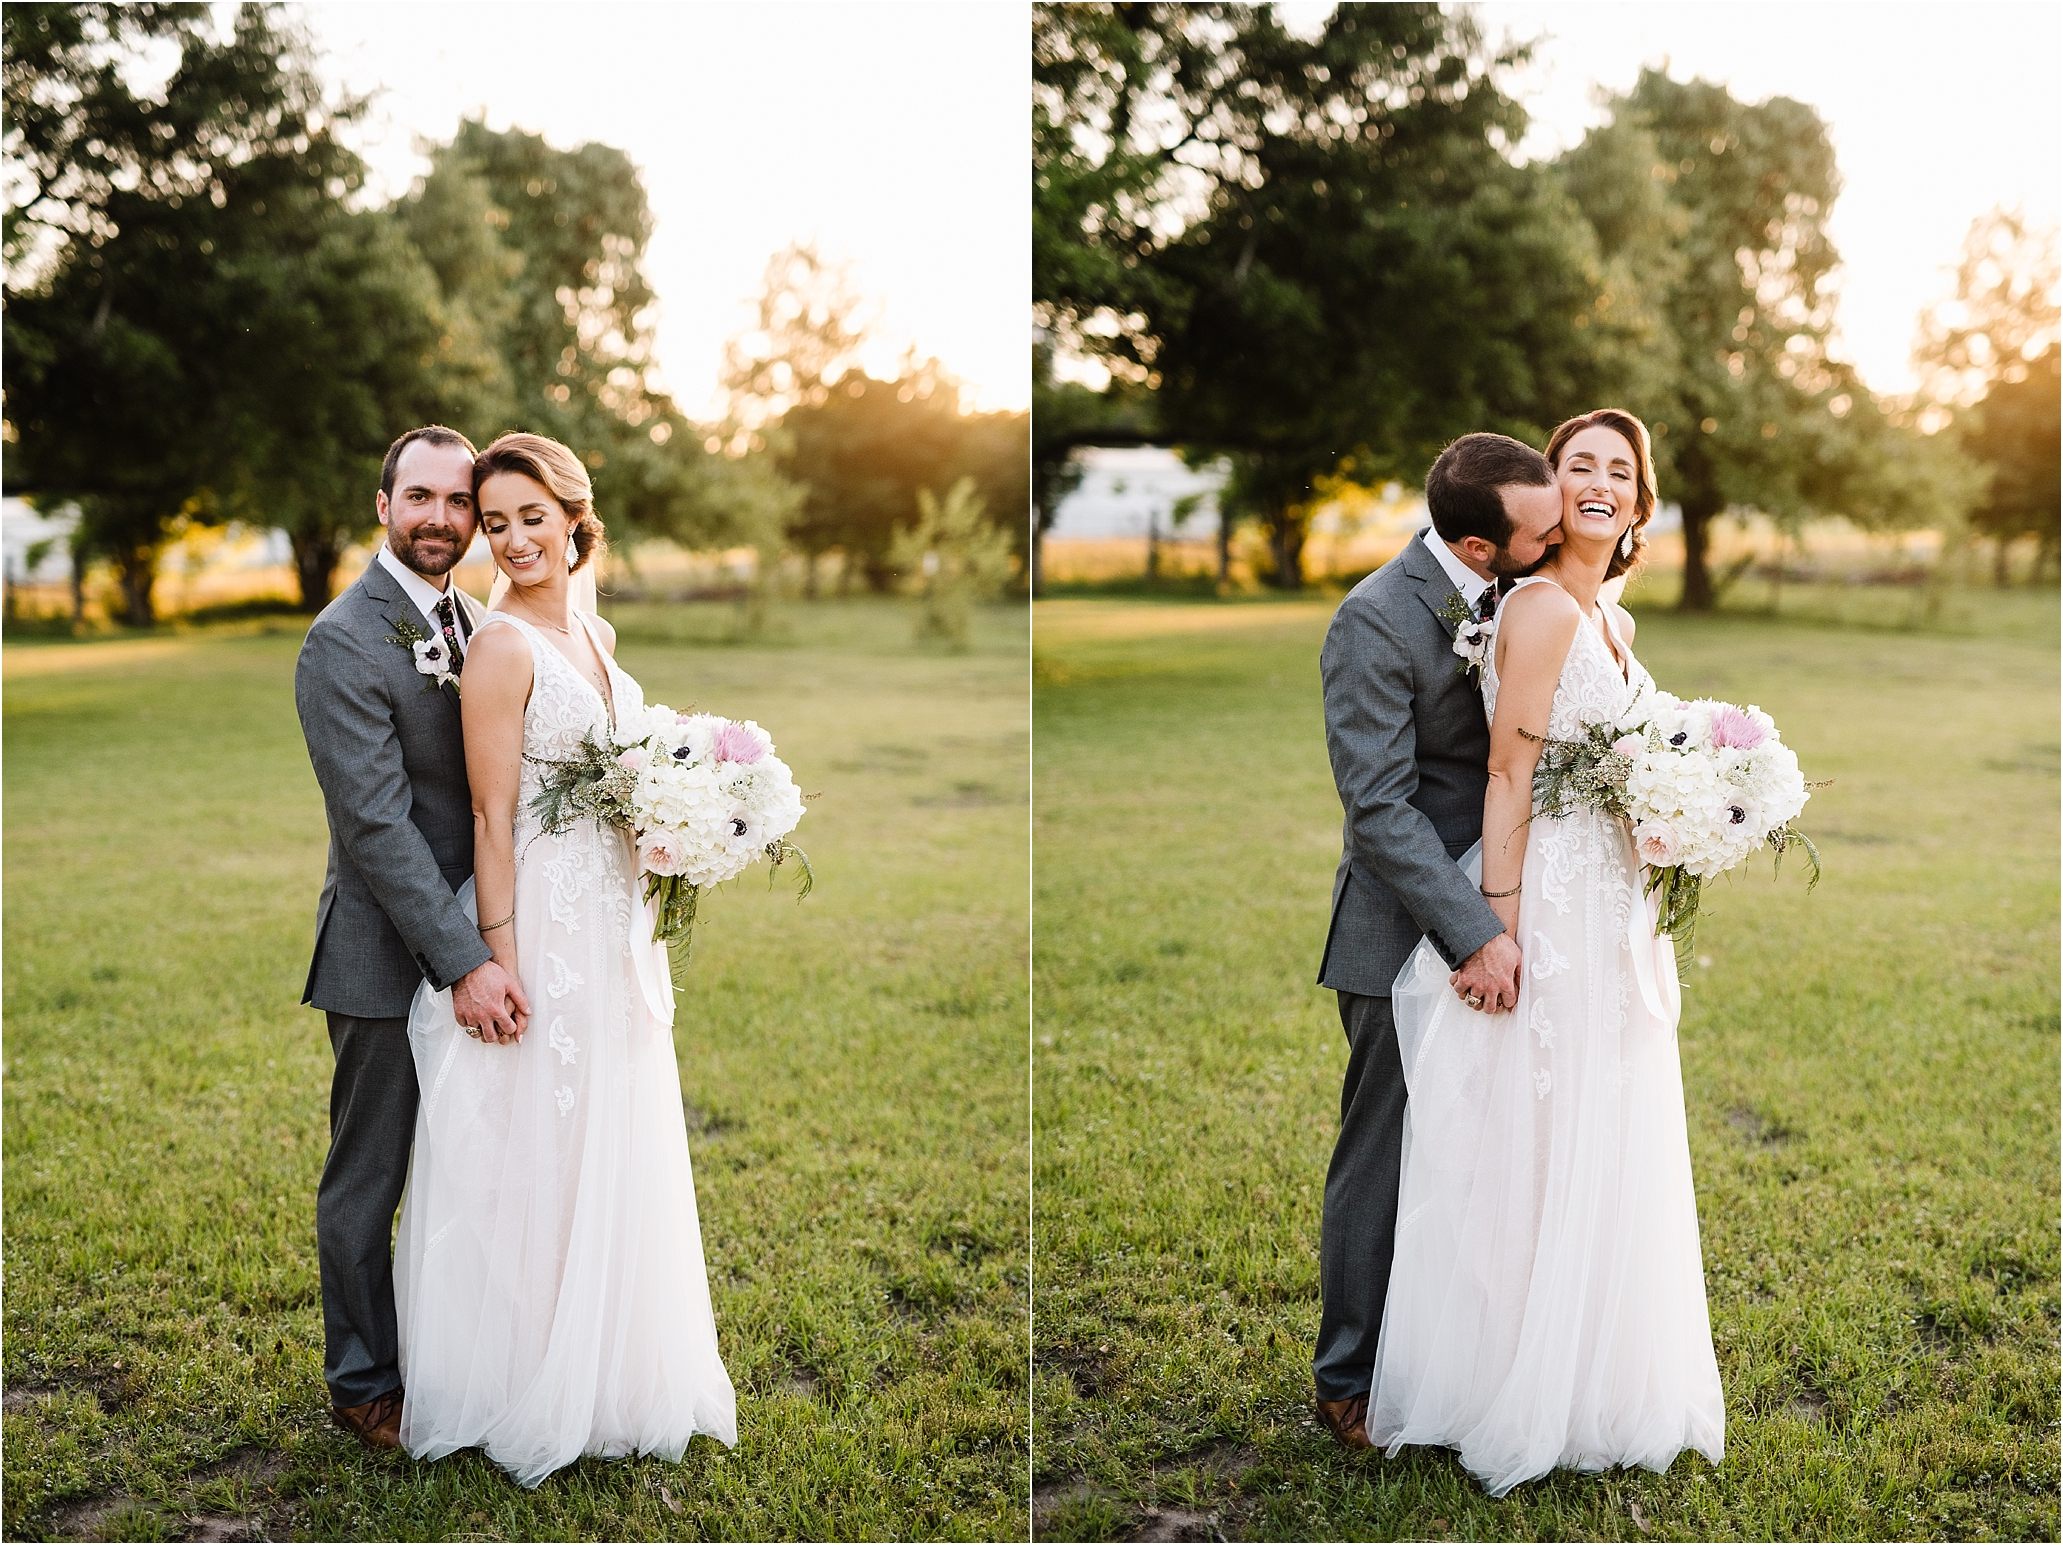 PattisonHouse_TexasWeddingPhotographer_CarlyCrockett&MattBrownWedding_0078.jpg